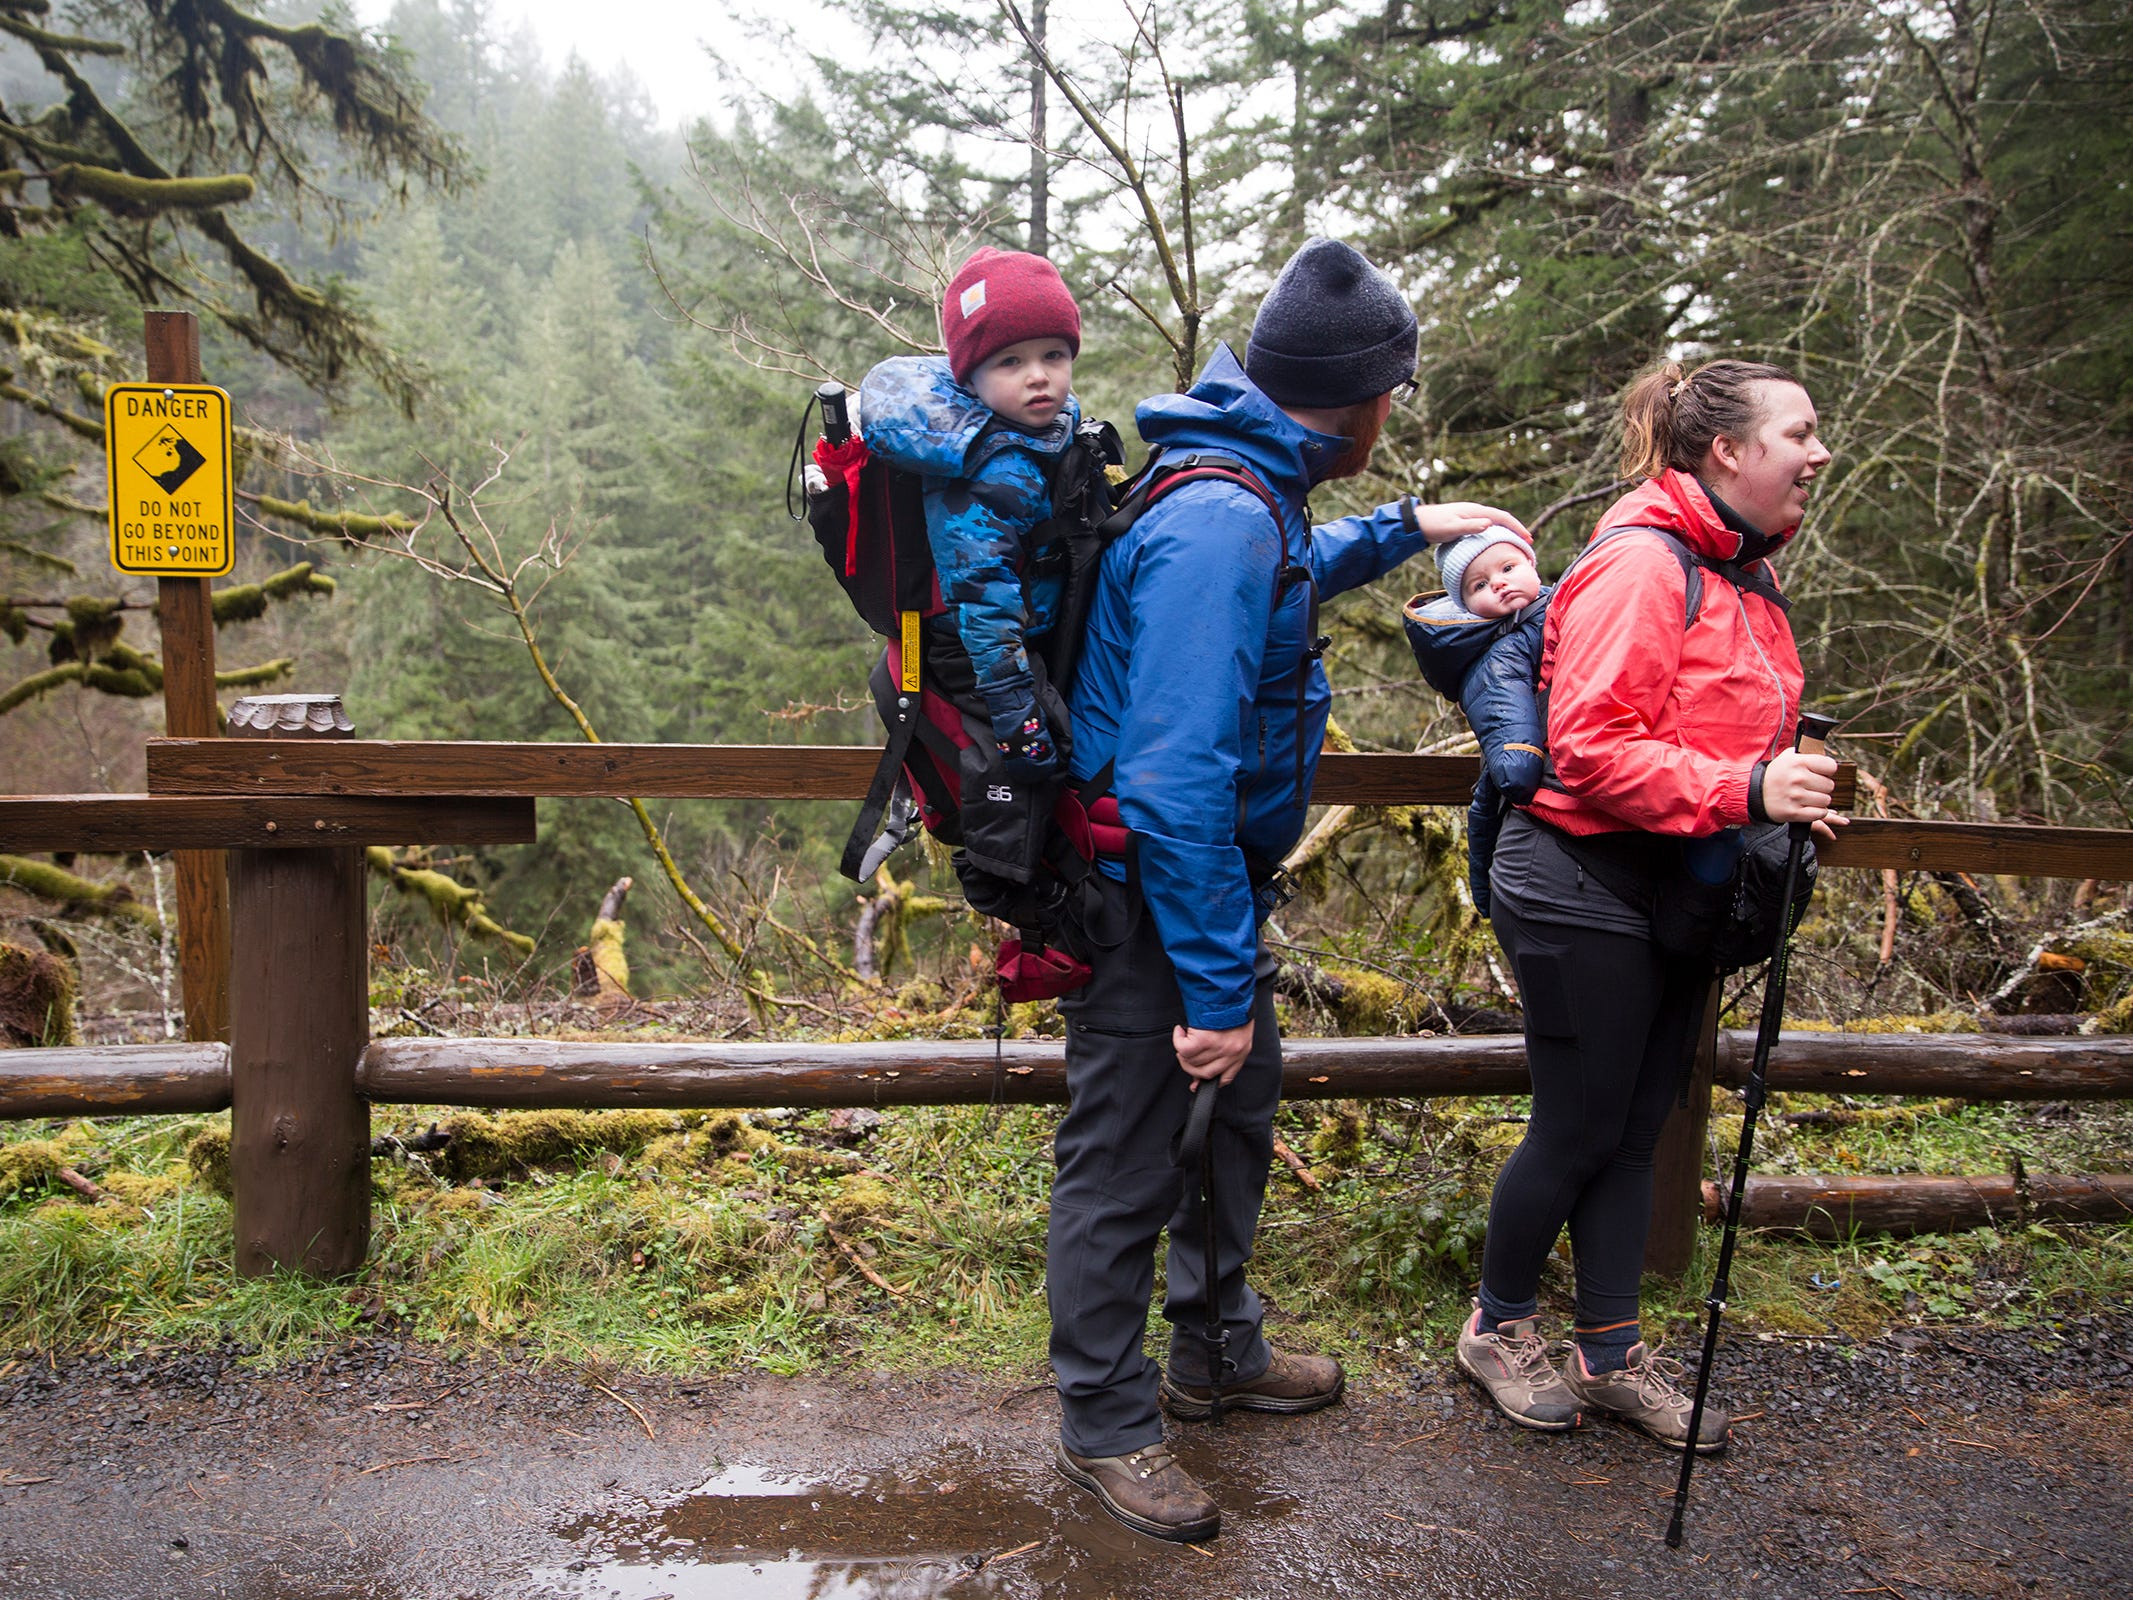 Seattle, Washington natives Teddi Dickerson, John Dickerson and their sons two-year-old Cooper and five-month-old Taylor take a break during a hike through South Falls at Silver Falls State Park in Sublimity on Wednesday, Dec. 26, 2018.